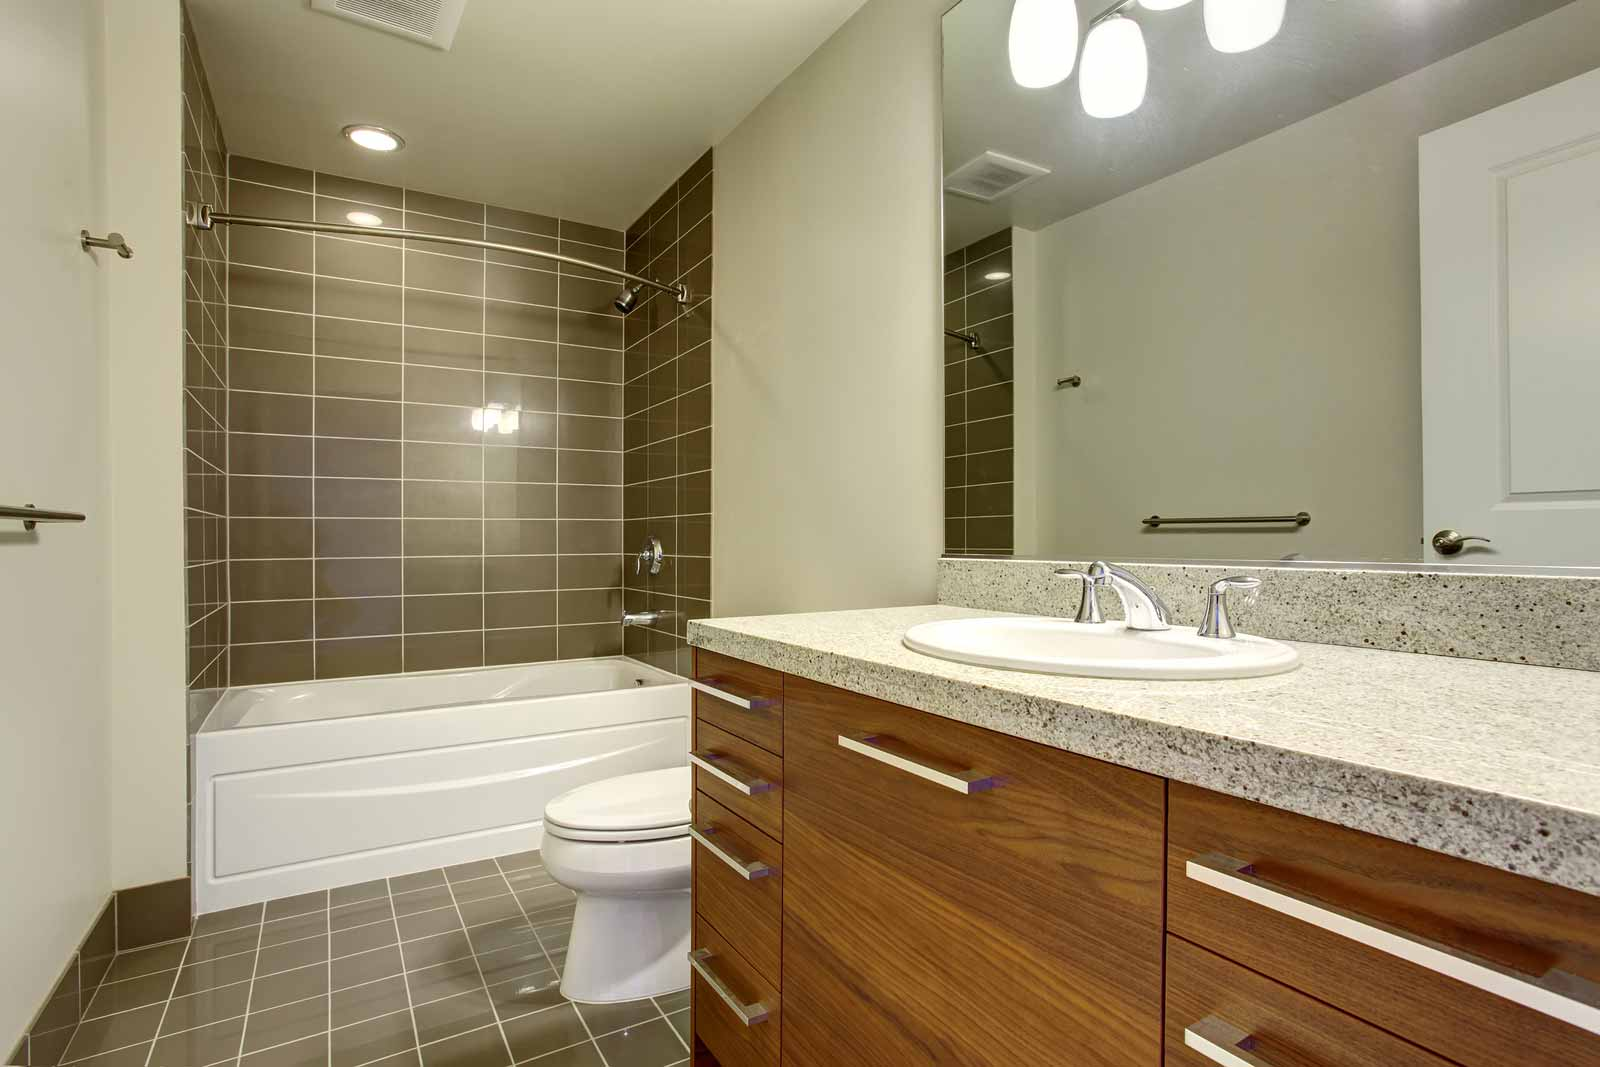 Oceanside-San Diego Bathtub Reglazing & Tub Resurfacing Pros